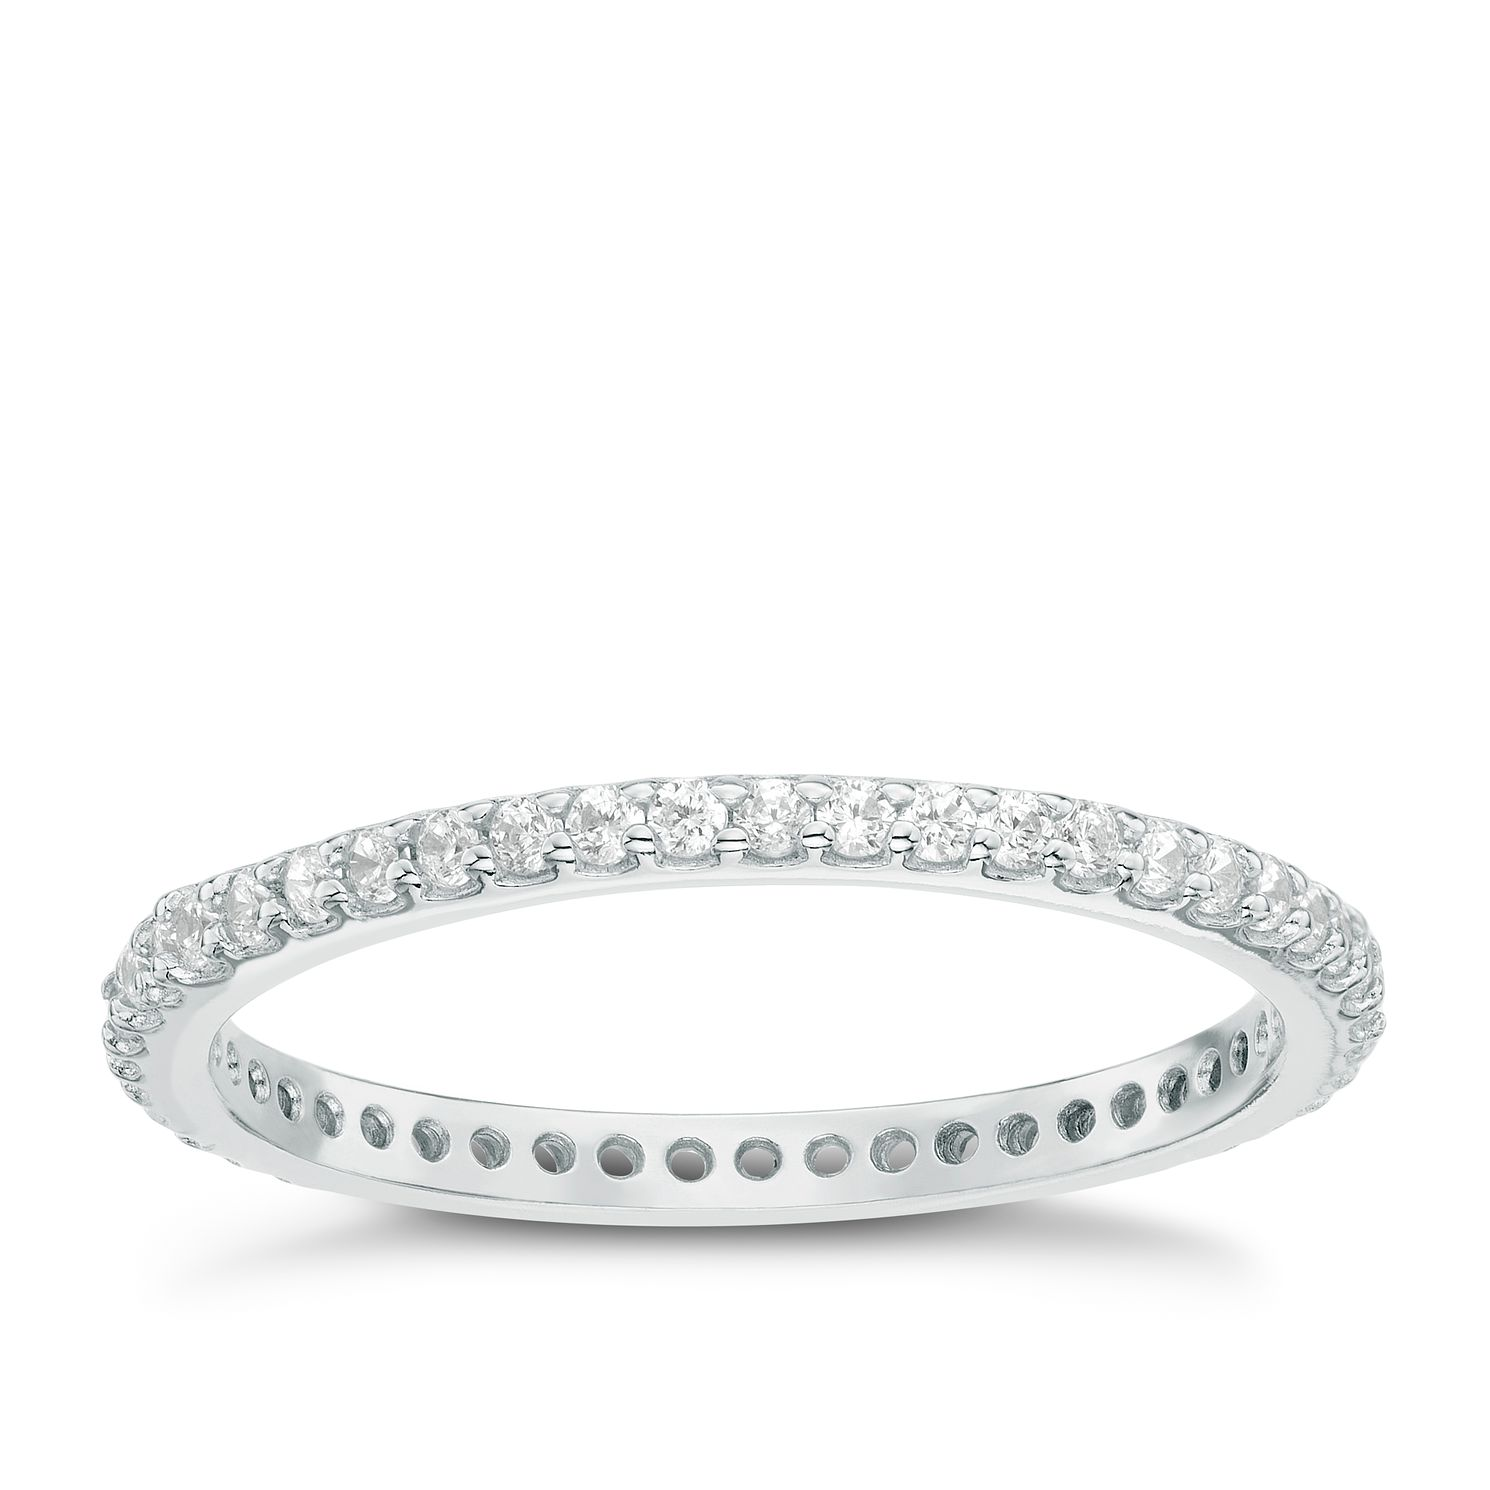 Sterling Silver Cubic Zirconia Set Full Eternity Ring Size L - Product number 6084036